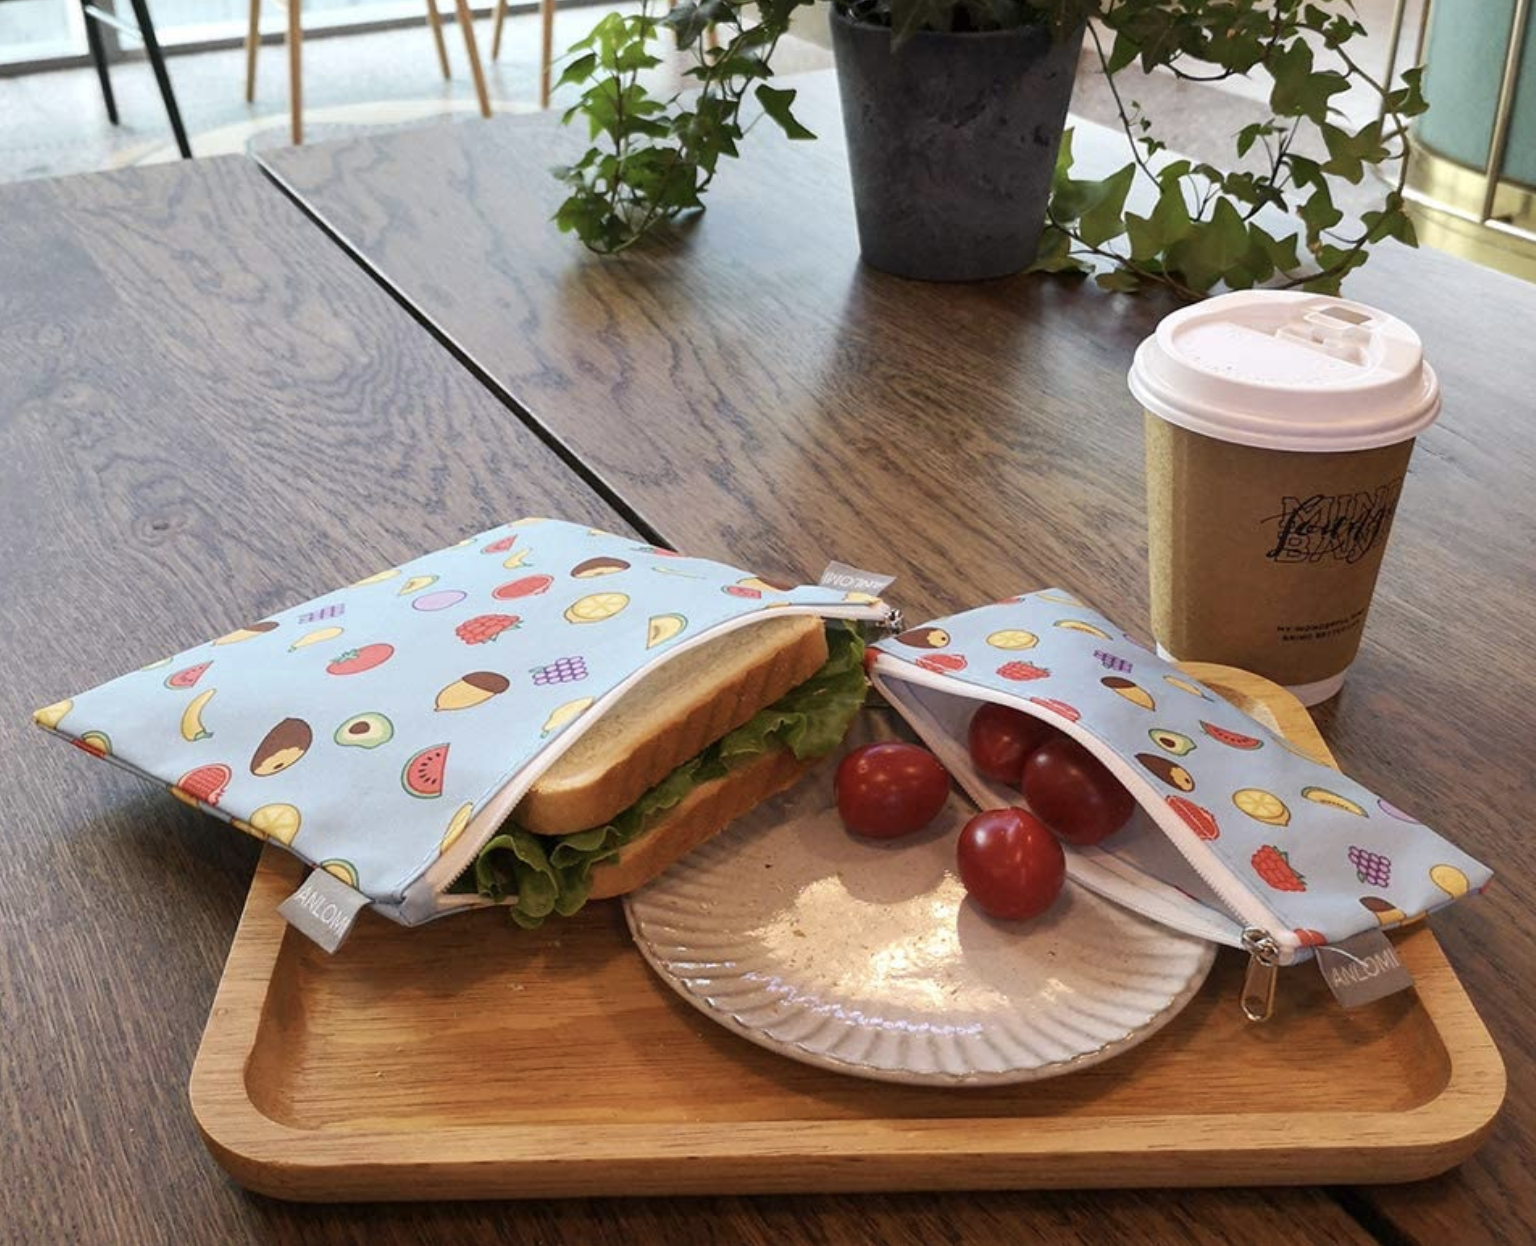 A sandwich size and snack size bag with a sandwich and tomatoes in them